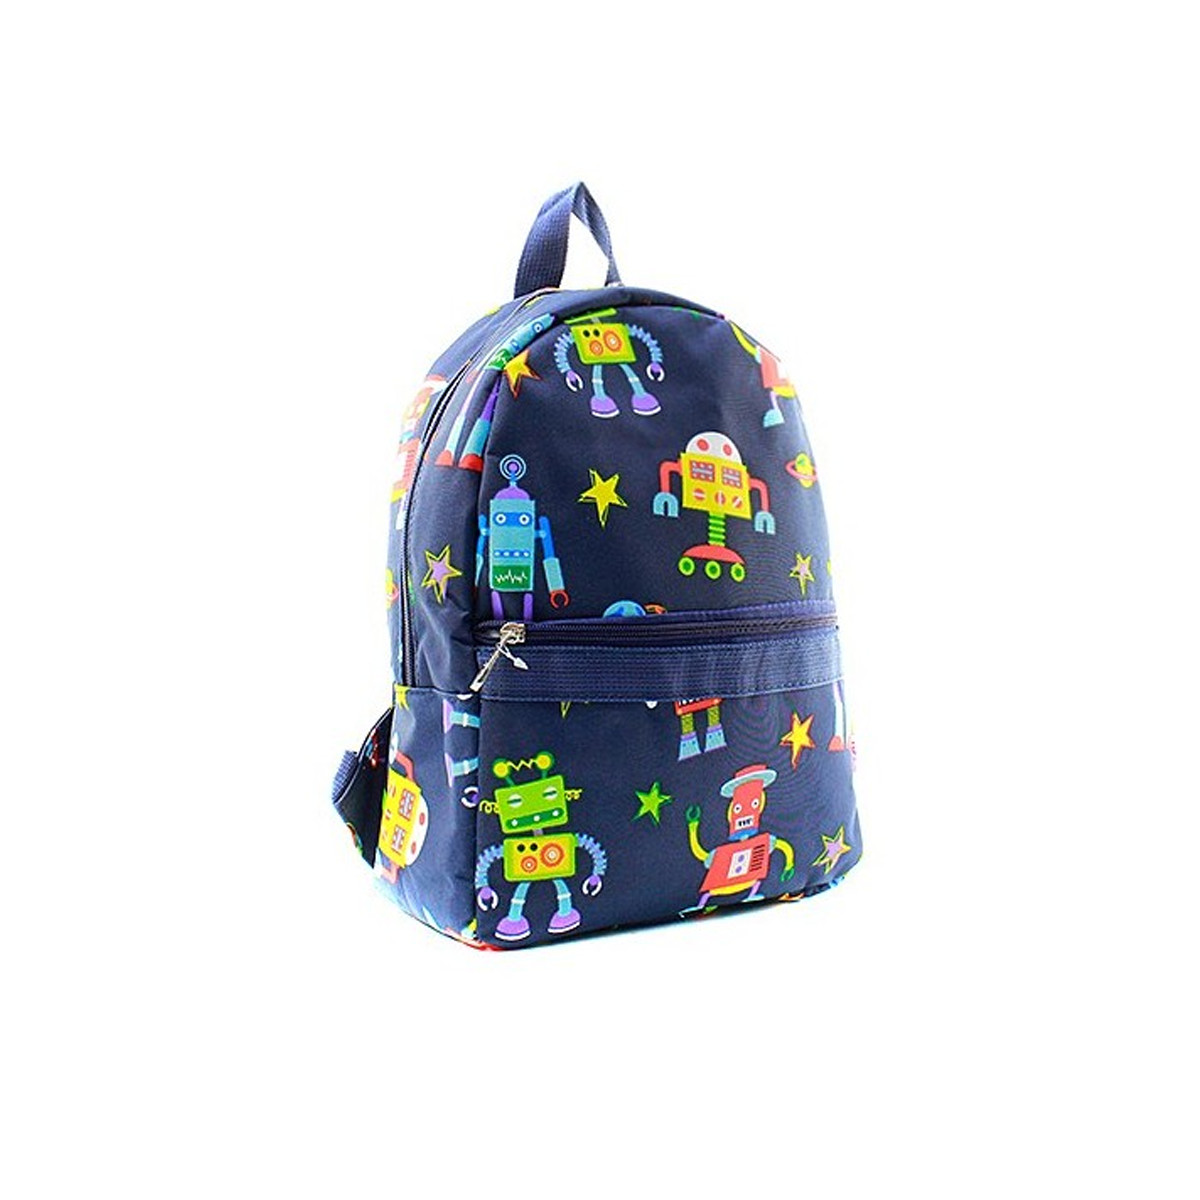 Backpack with robot design and padded adjustable straps